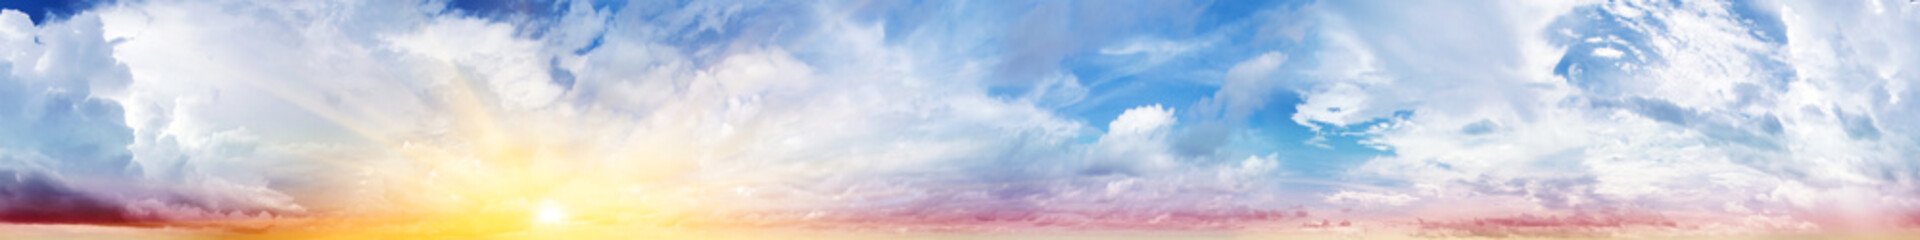 Colorful sky and clouds